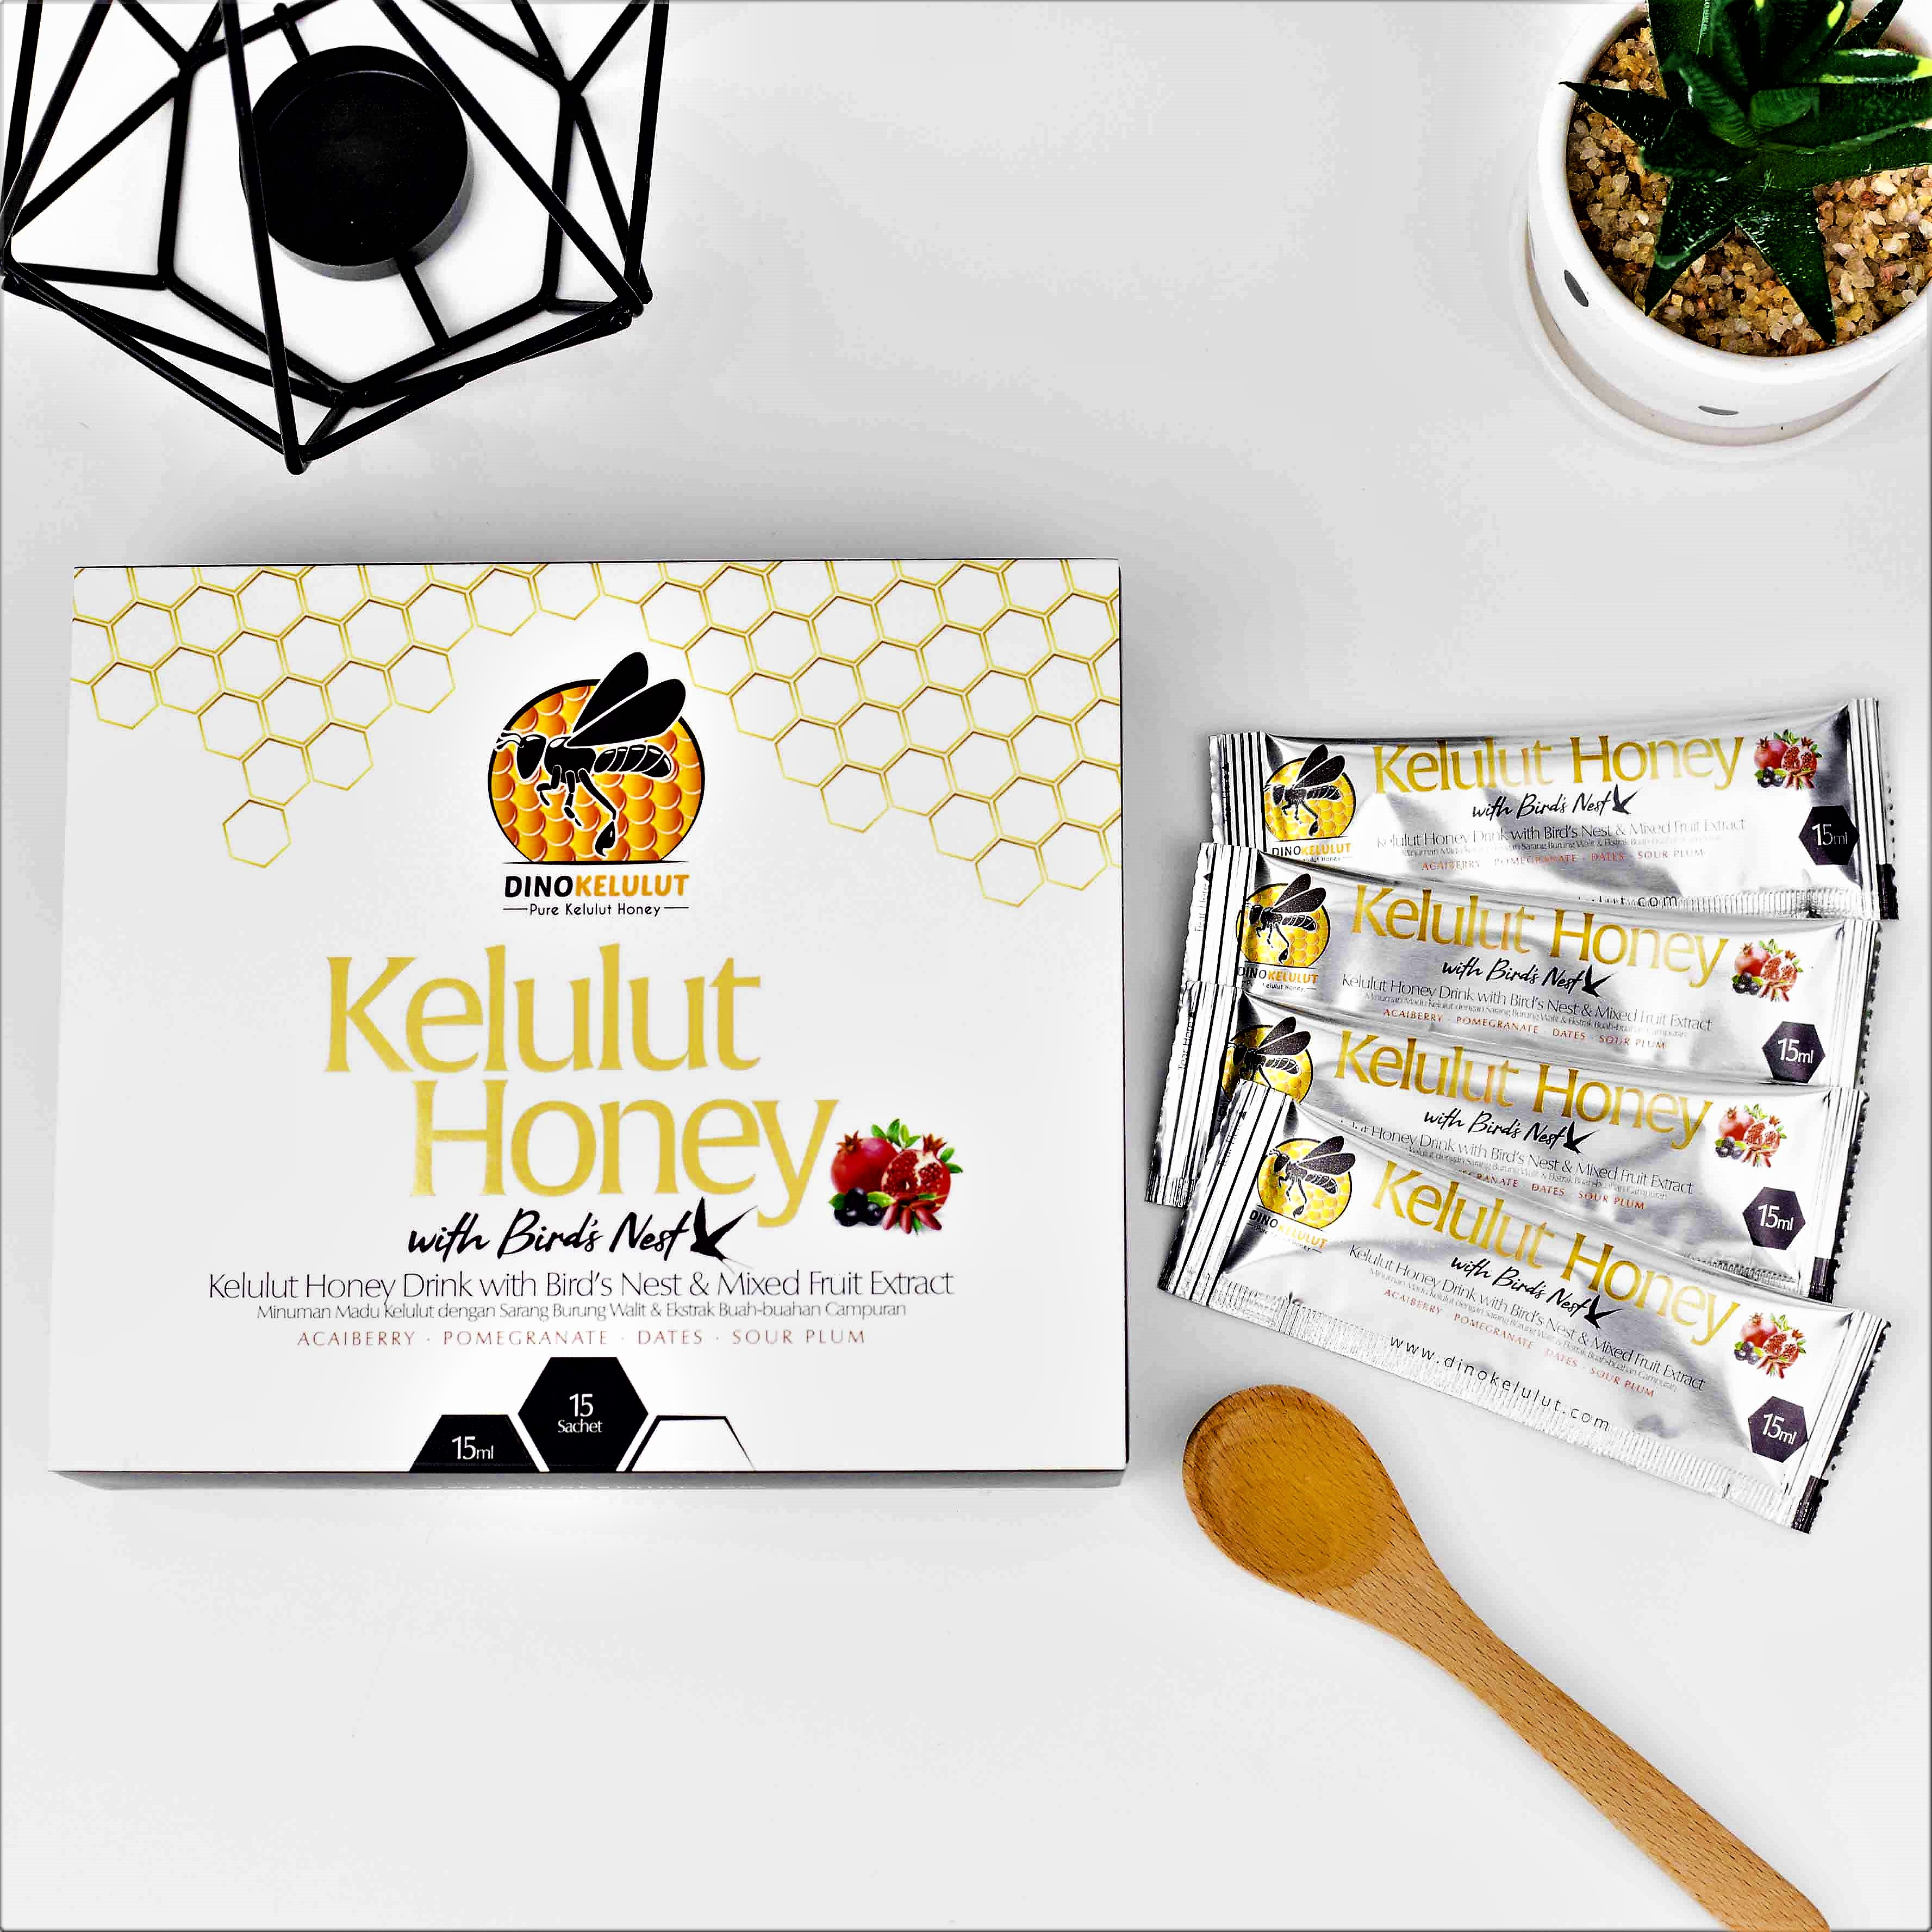 Dinokelulut introduces Malaysian stingless bee honey to combat the pandemic